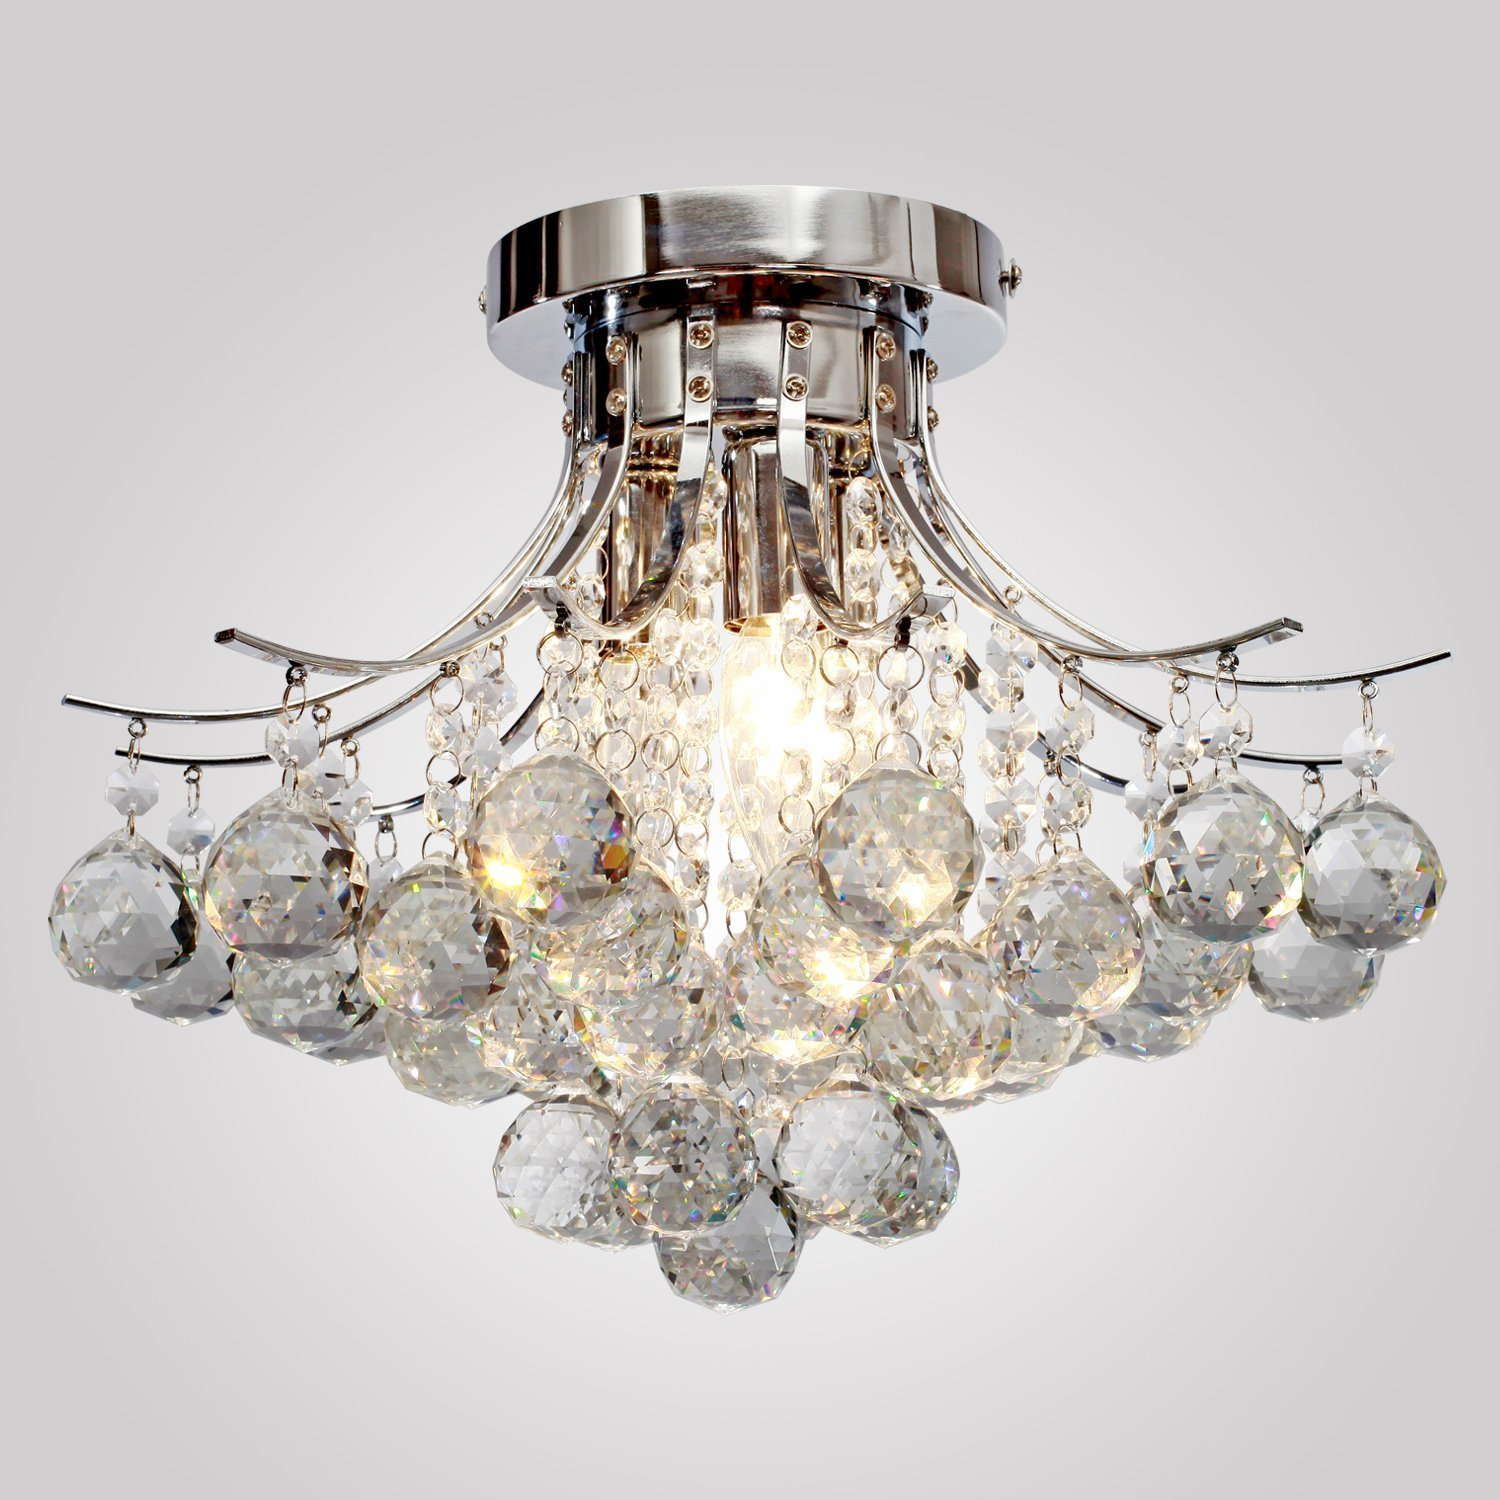 does on dimmer light questions amps project bulb chandelier home wiring affect